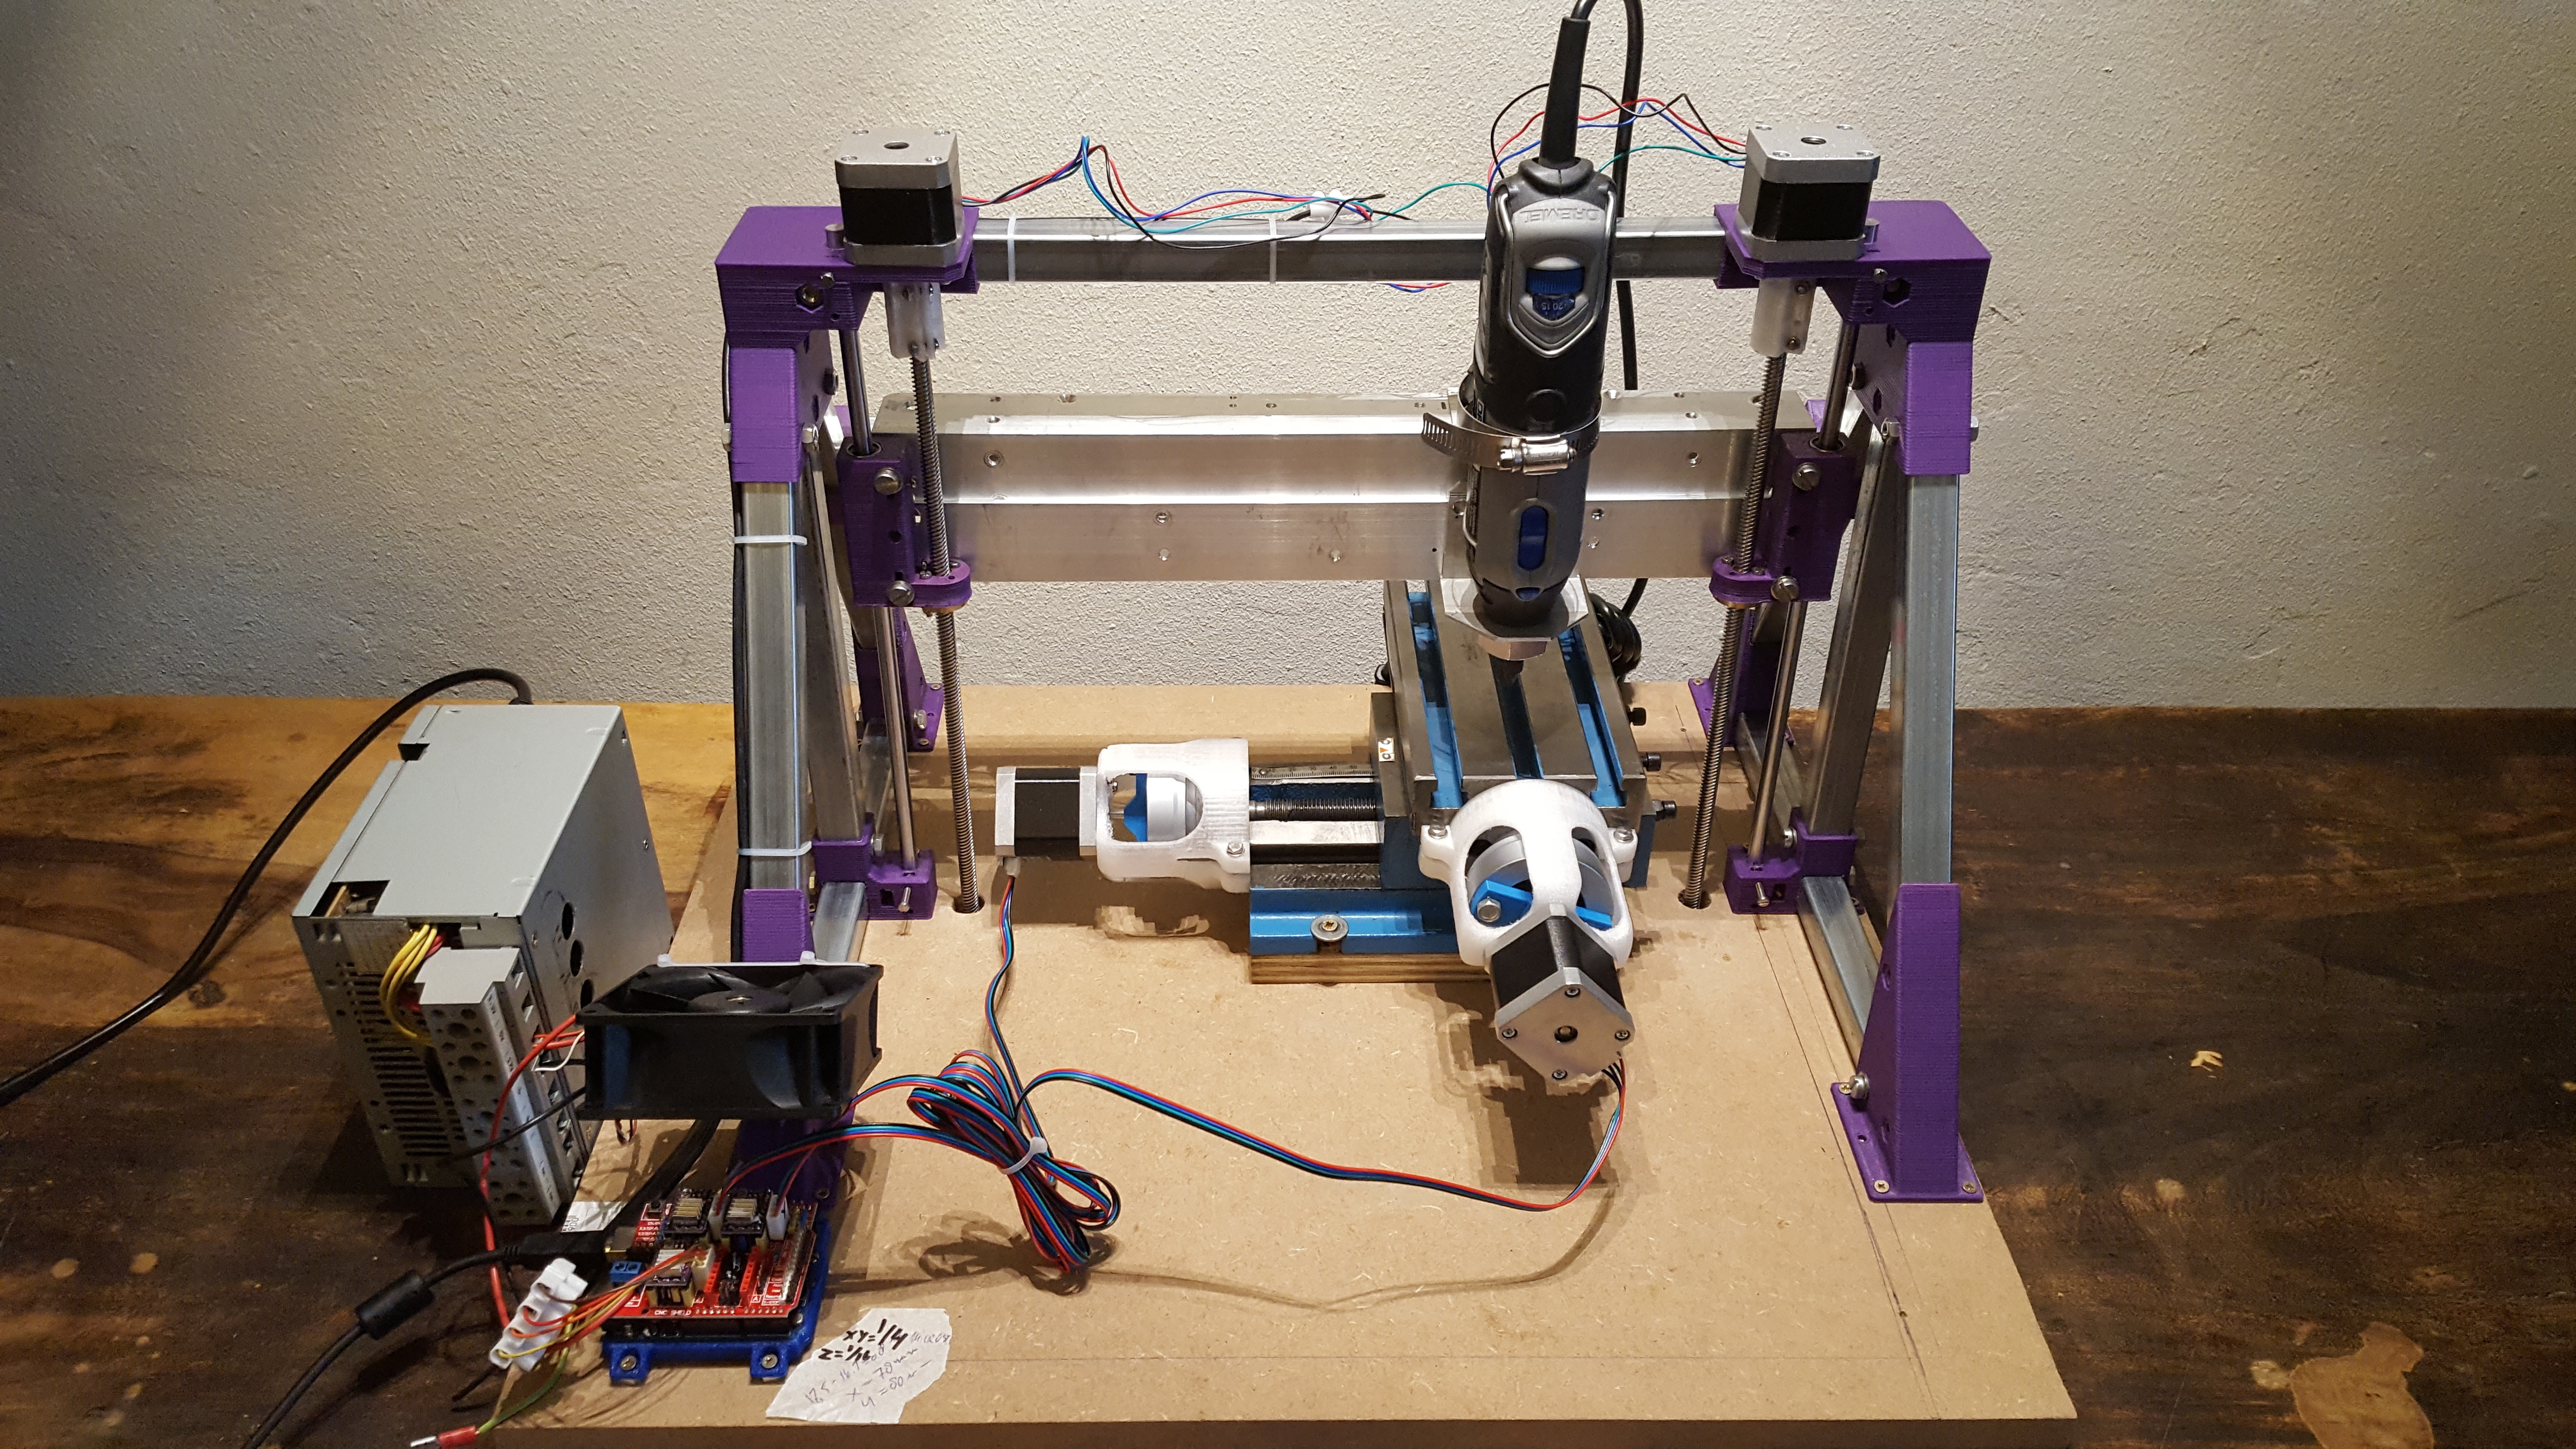 3D Printed Z axis for CNC mini mill by jobsmolders | Pinshape